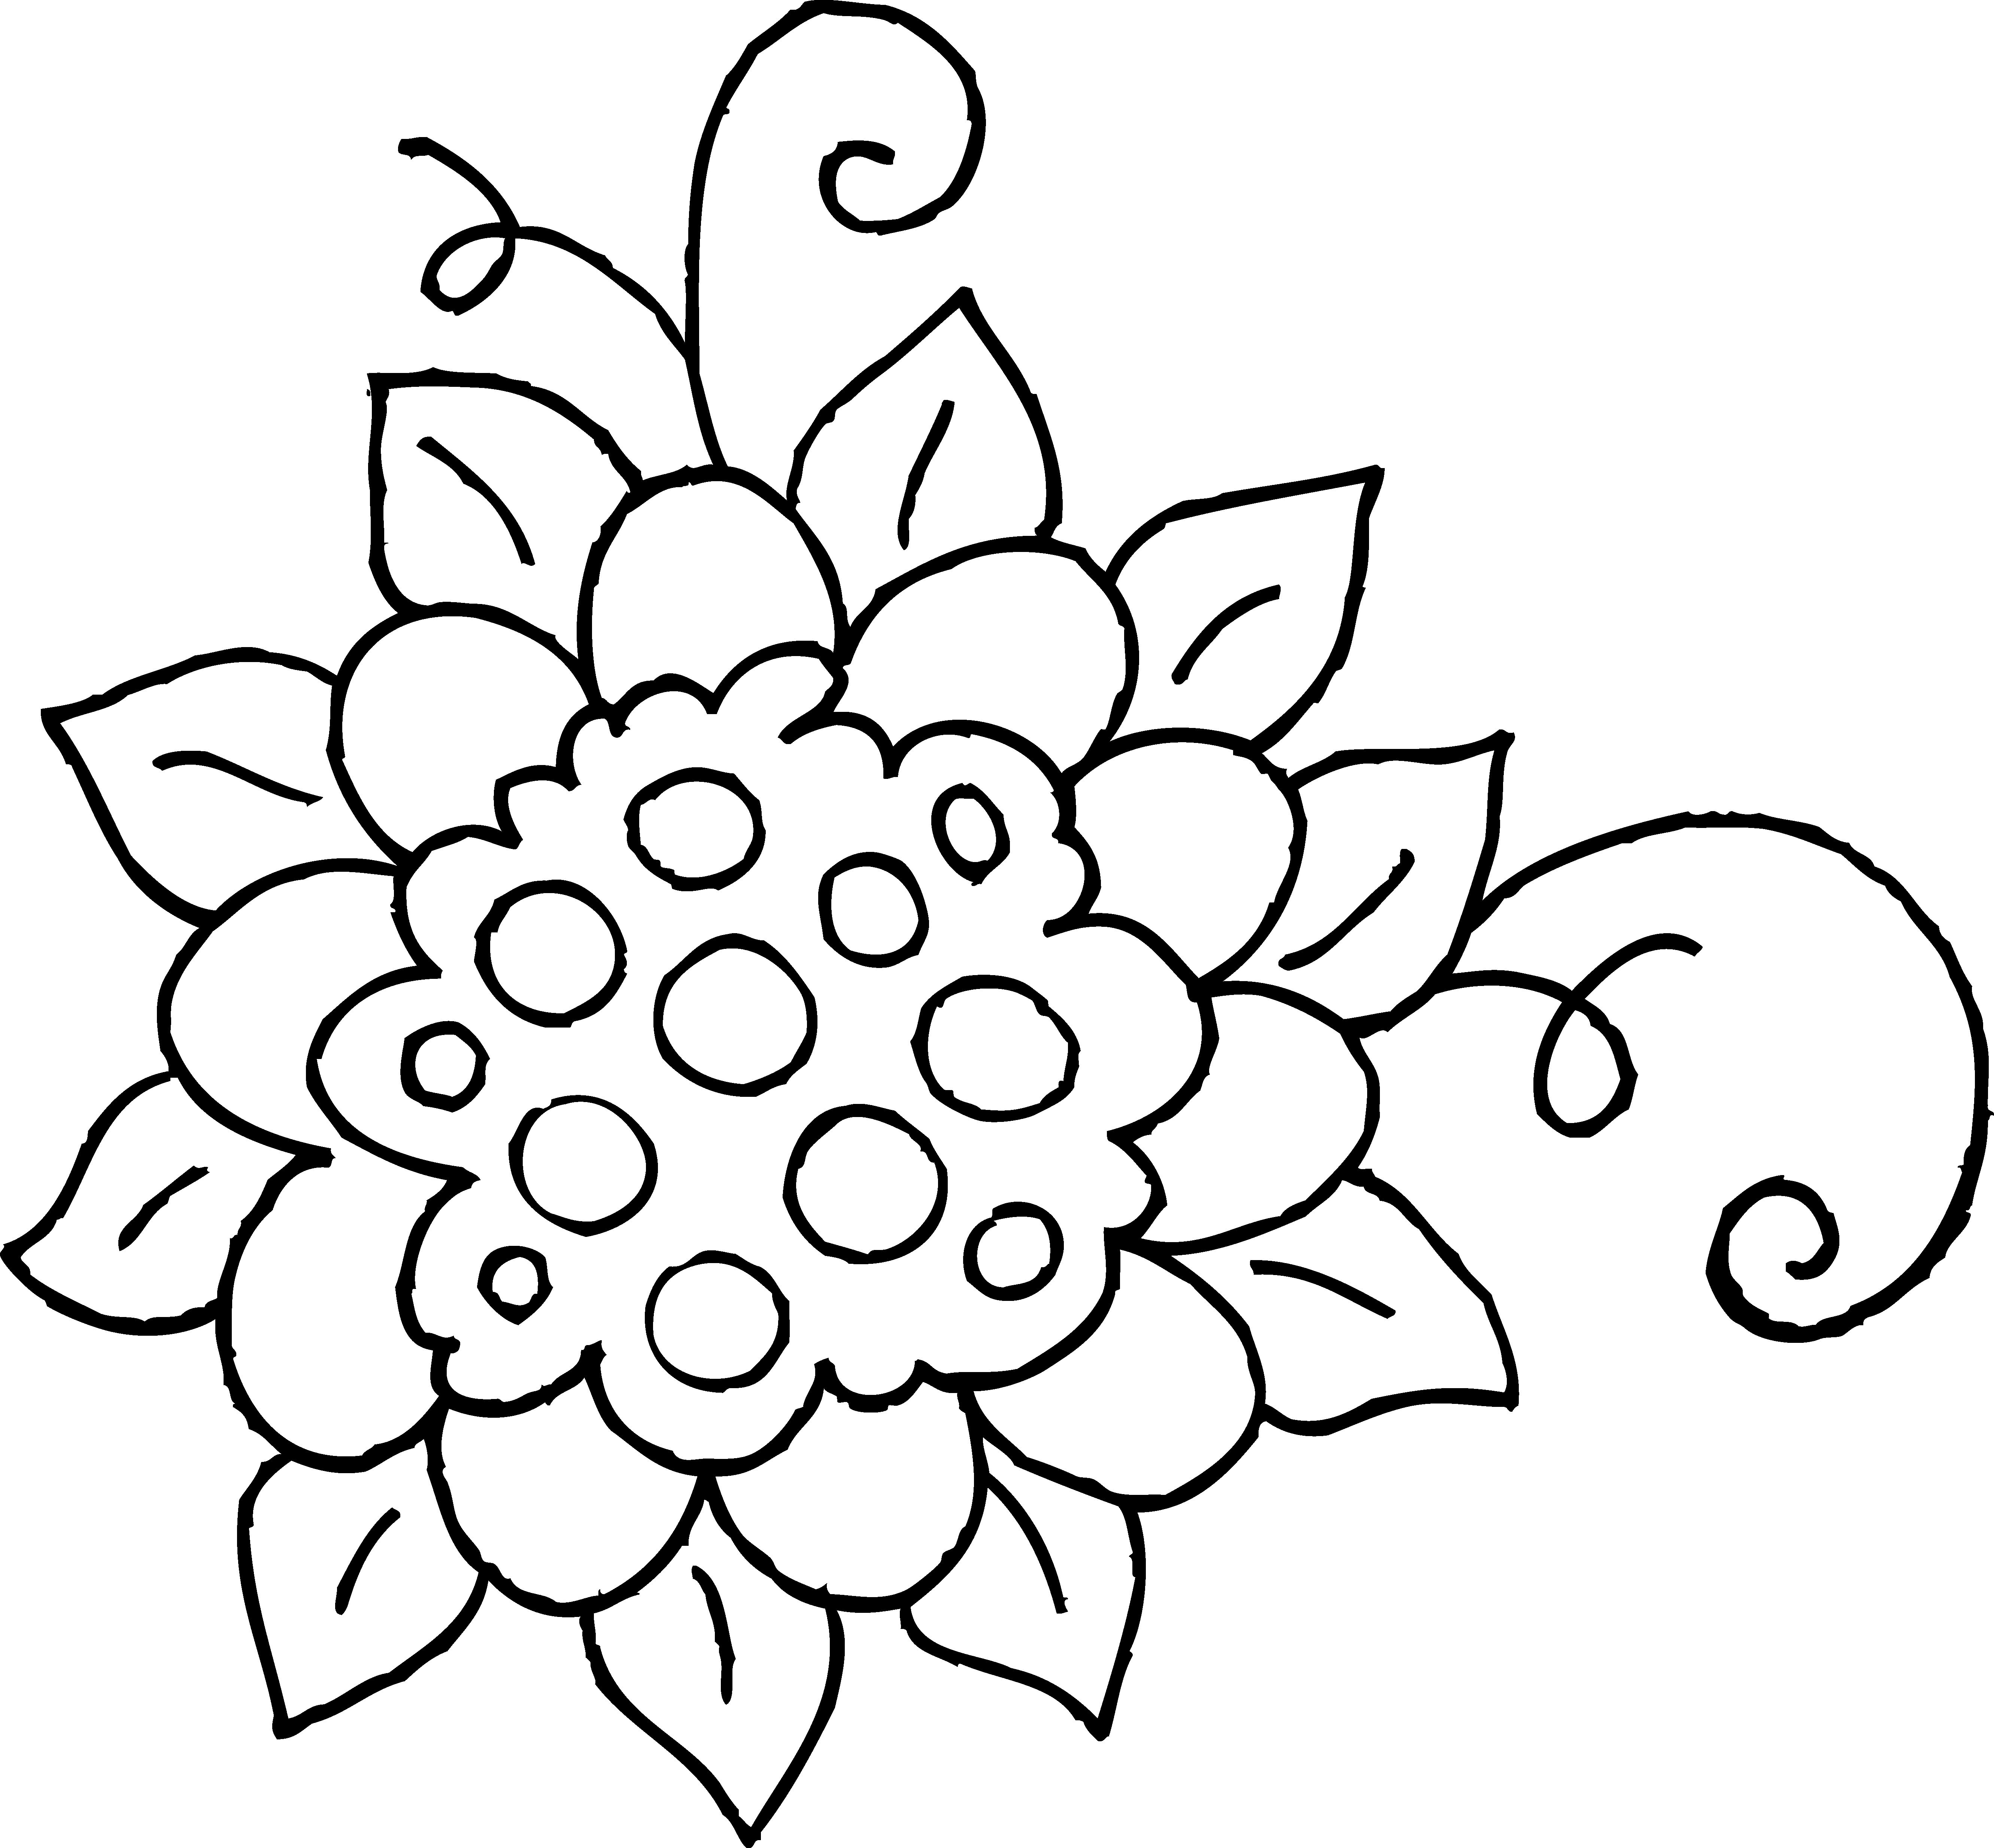 Cute spring flower free. Number 1 clipart coloring page